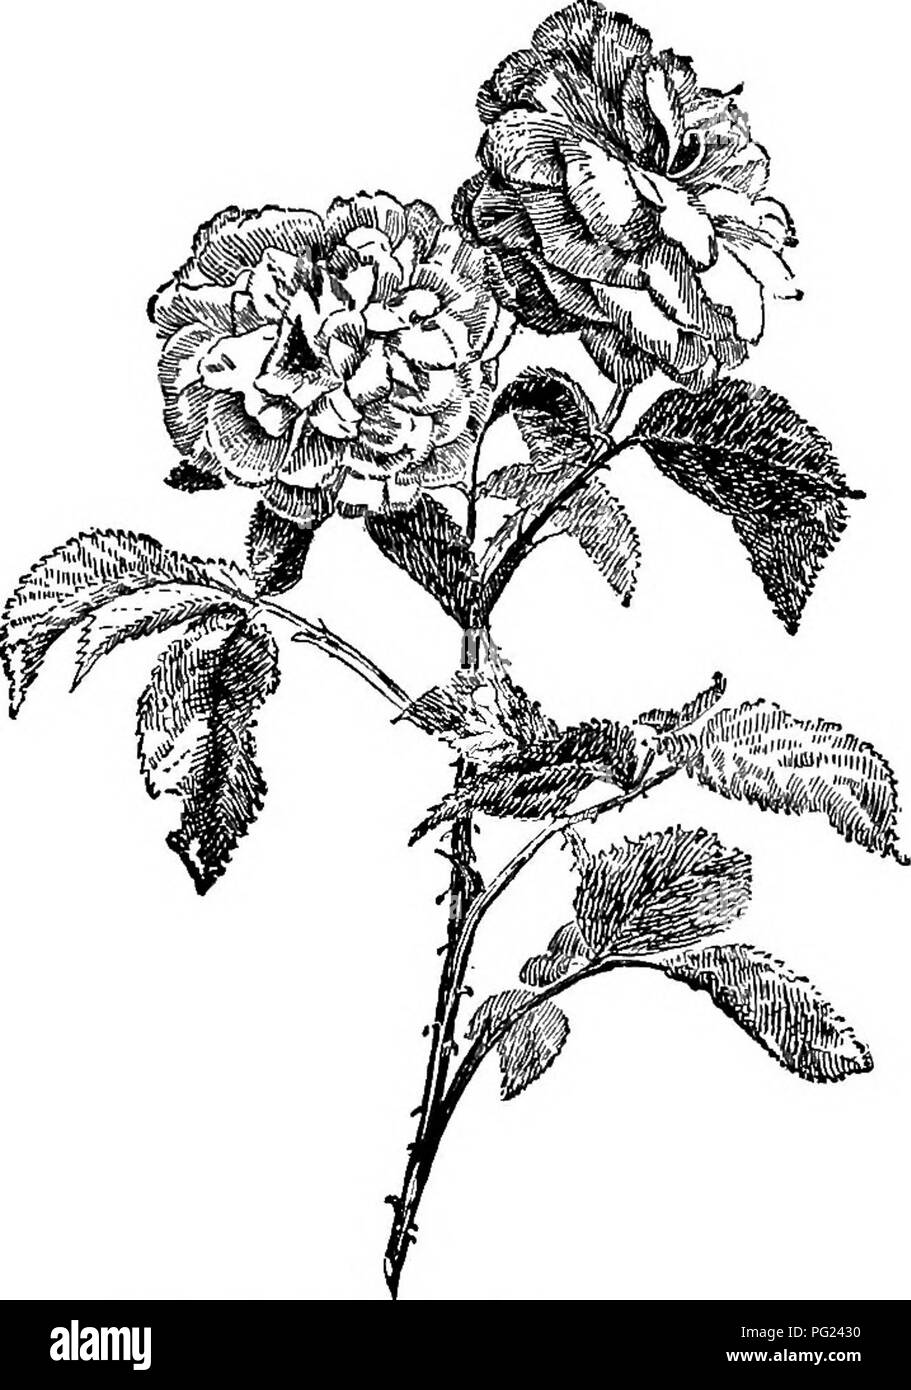 . Manual of gardening : a practical guide to the making of home grounds and the growing of flowers, fruits, and vegetables for home use . Gardening. 318 MANUAL OF GARDENING Bougainvillea, Bougainvillma glabra and B. spectabilis. The magenta-flowered variety, sometimes seen in conservatories in the North, is a popular outdoor vine in the South and is profusely used in south- ern California. The red-flowered form is less seen, but is preferable in color. Wire-vine (polygonum of florists), Muehlenheckia complexa. Abundantly used on buildings and chimneys in southern California. Climbing roses. Th - Stock Image